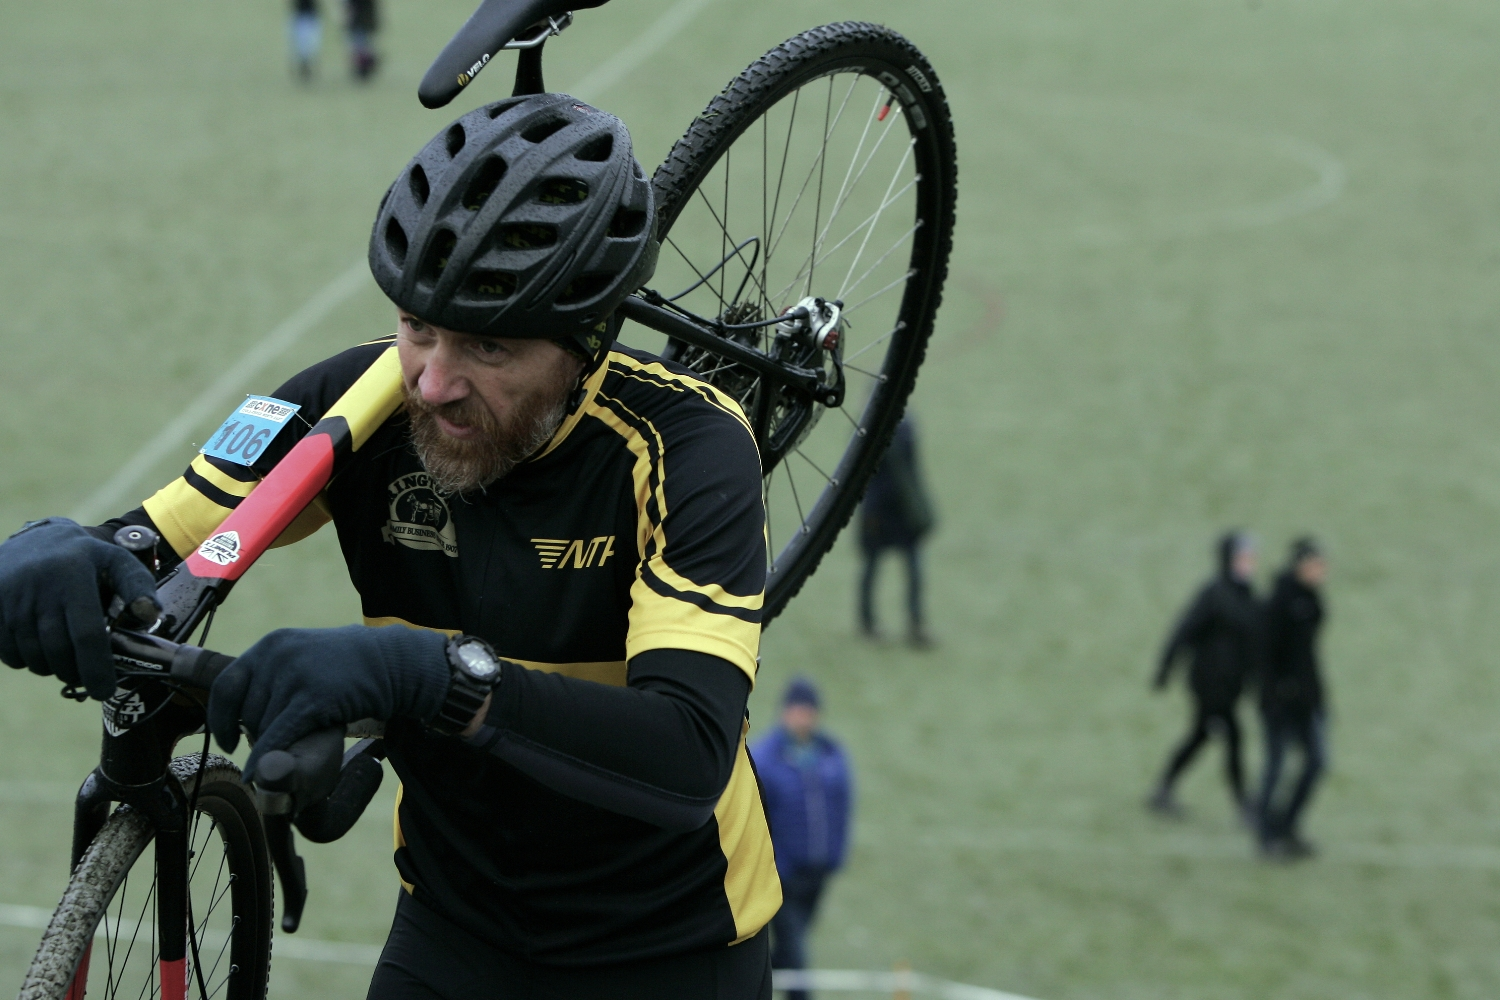 North East Cyclo-Cross League Round 13